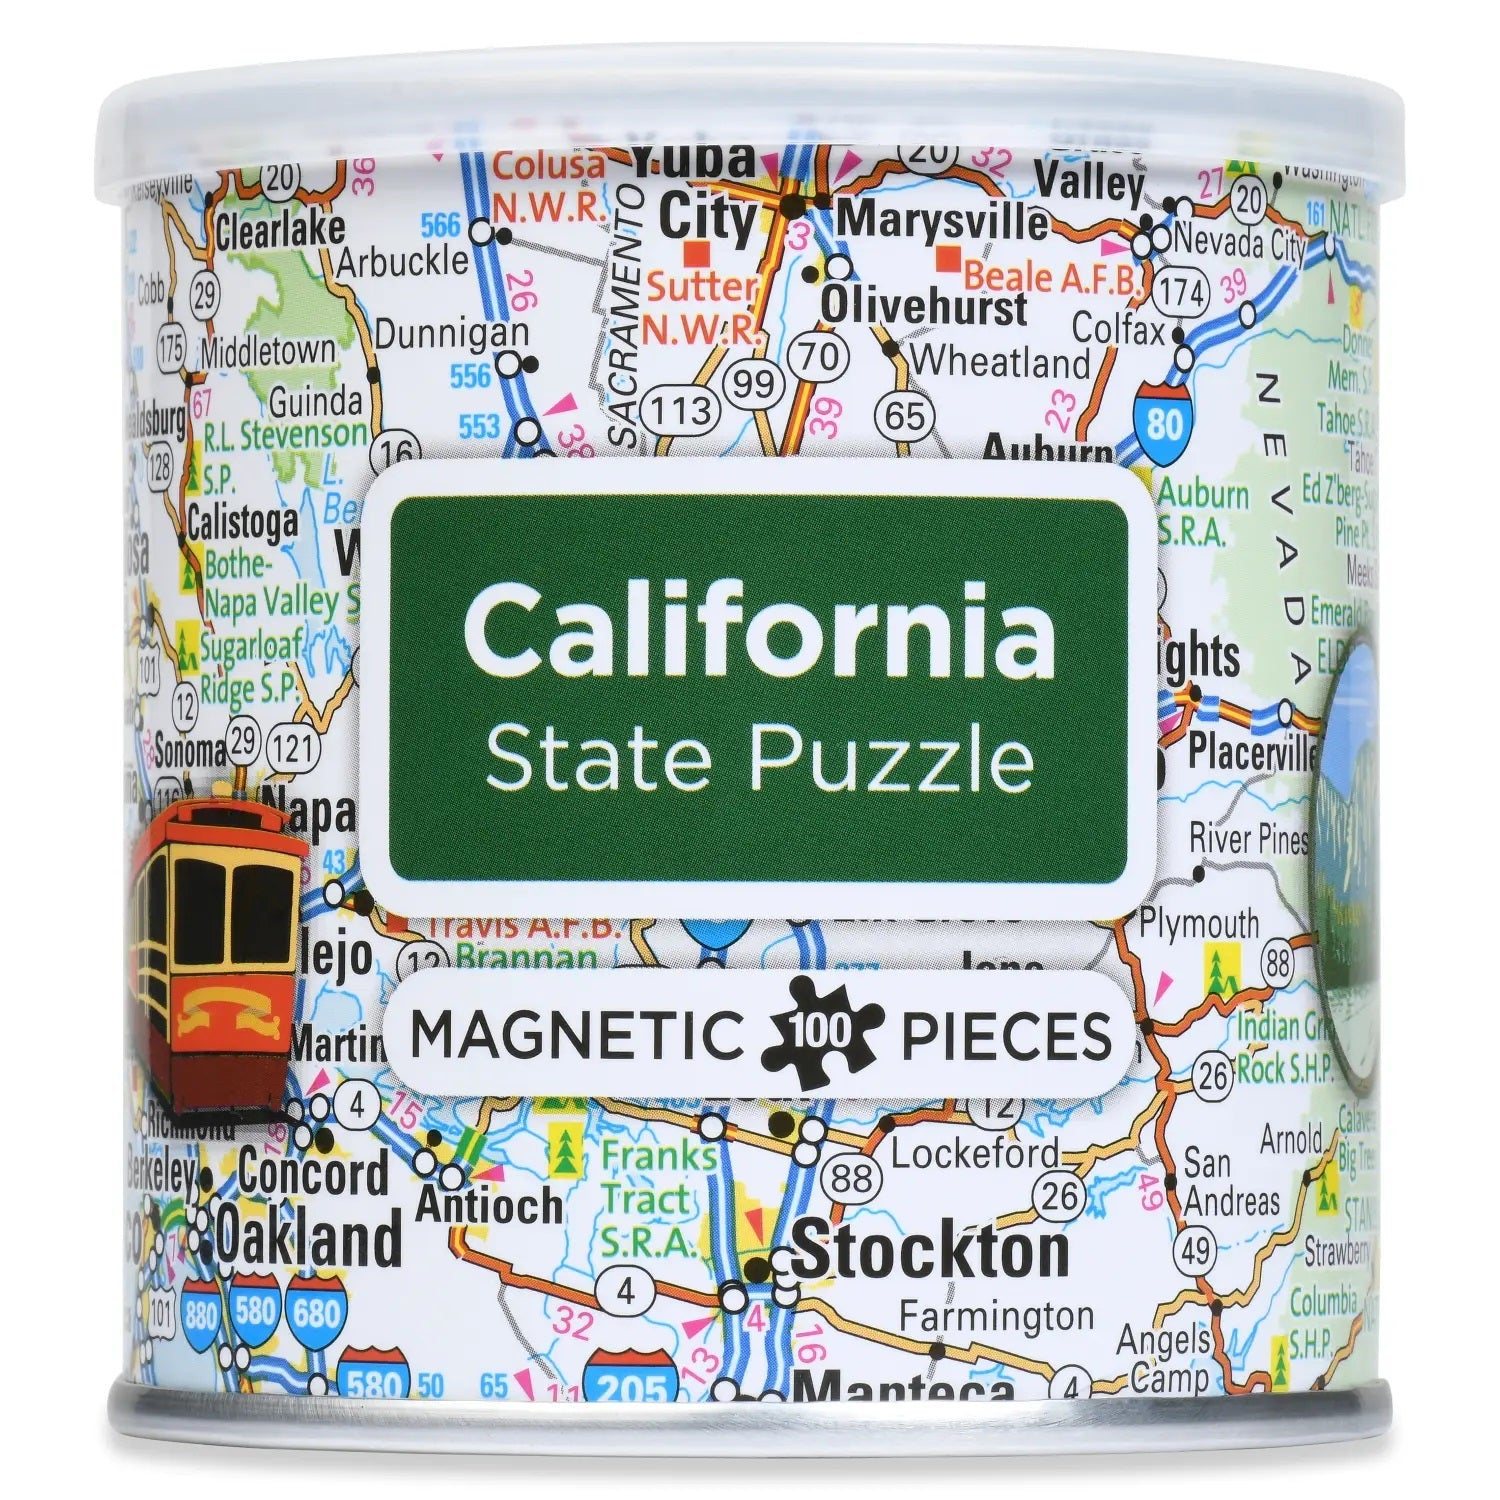 Packaging canister of California road map puzzle with magnetic pieces 100 count with cities trolley major roadways and landmarks